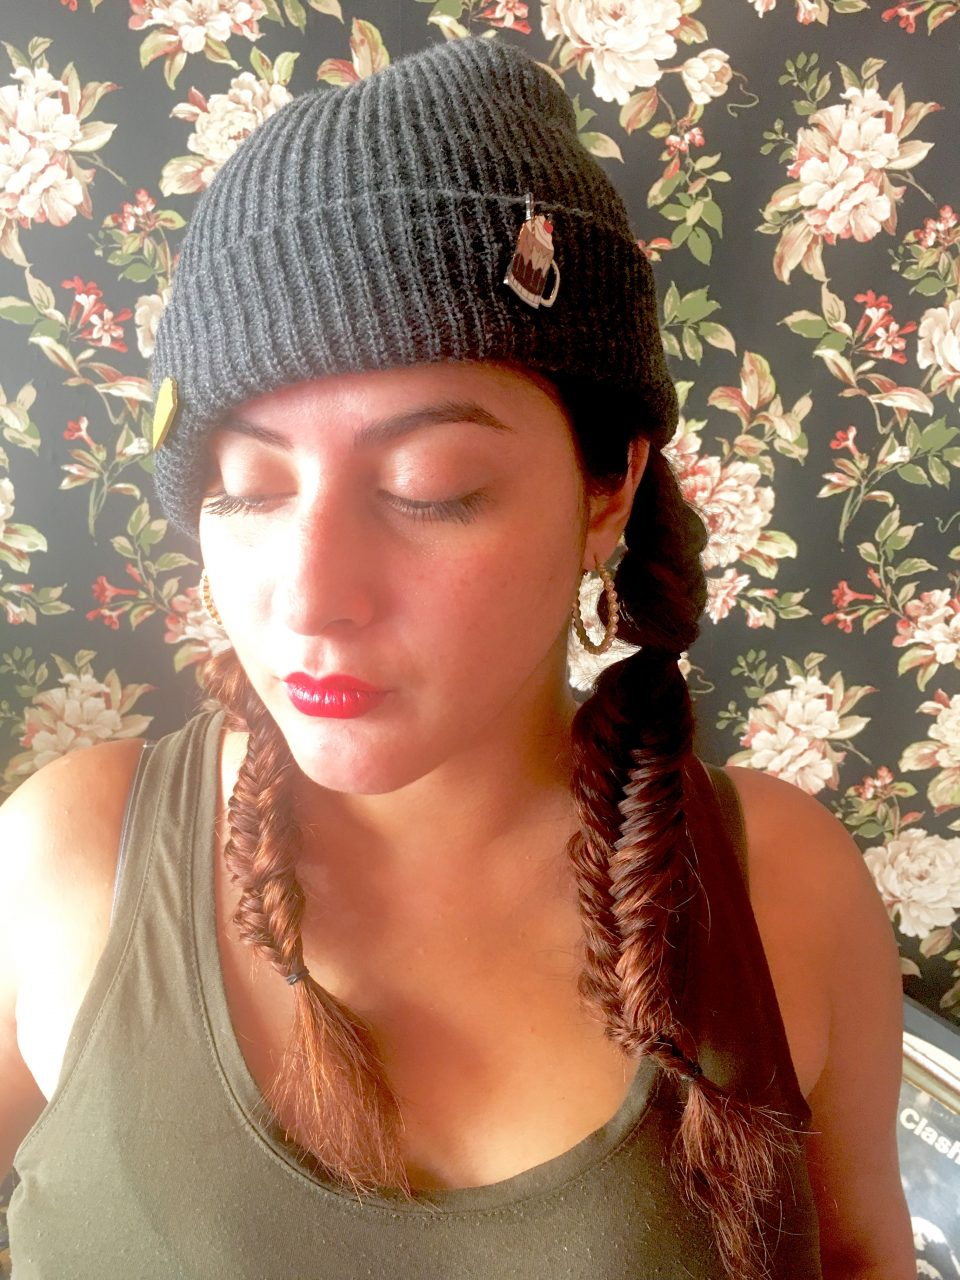 Double Fish Tail Braids sprayed with R+Co Rockaway Salt Spray to add texture - who says salt spray is just for summer?!